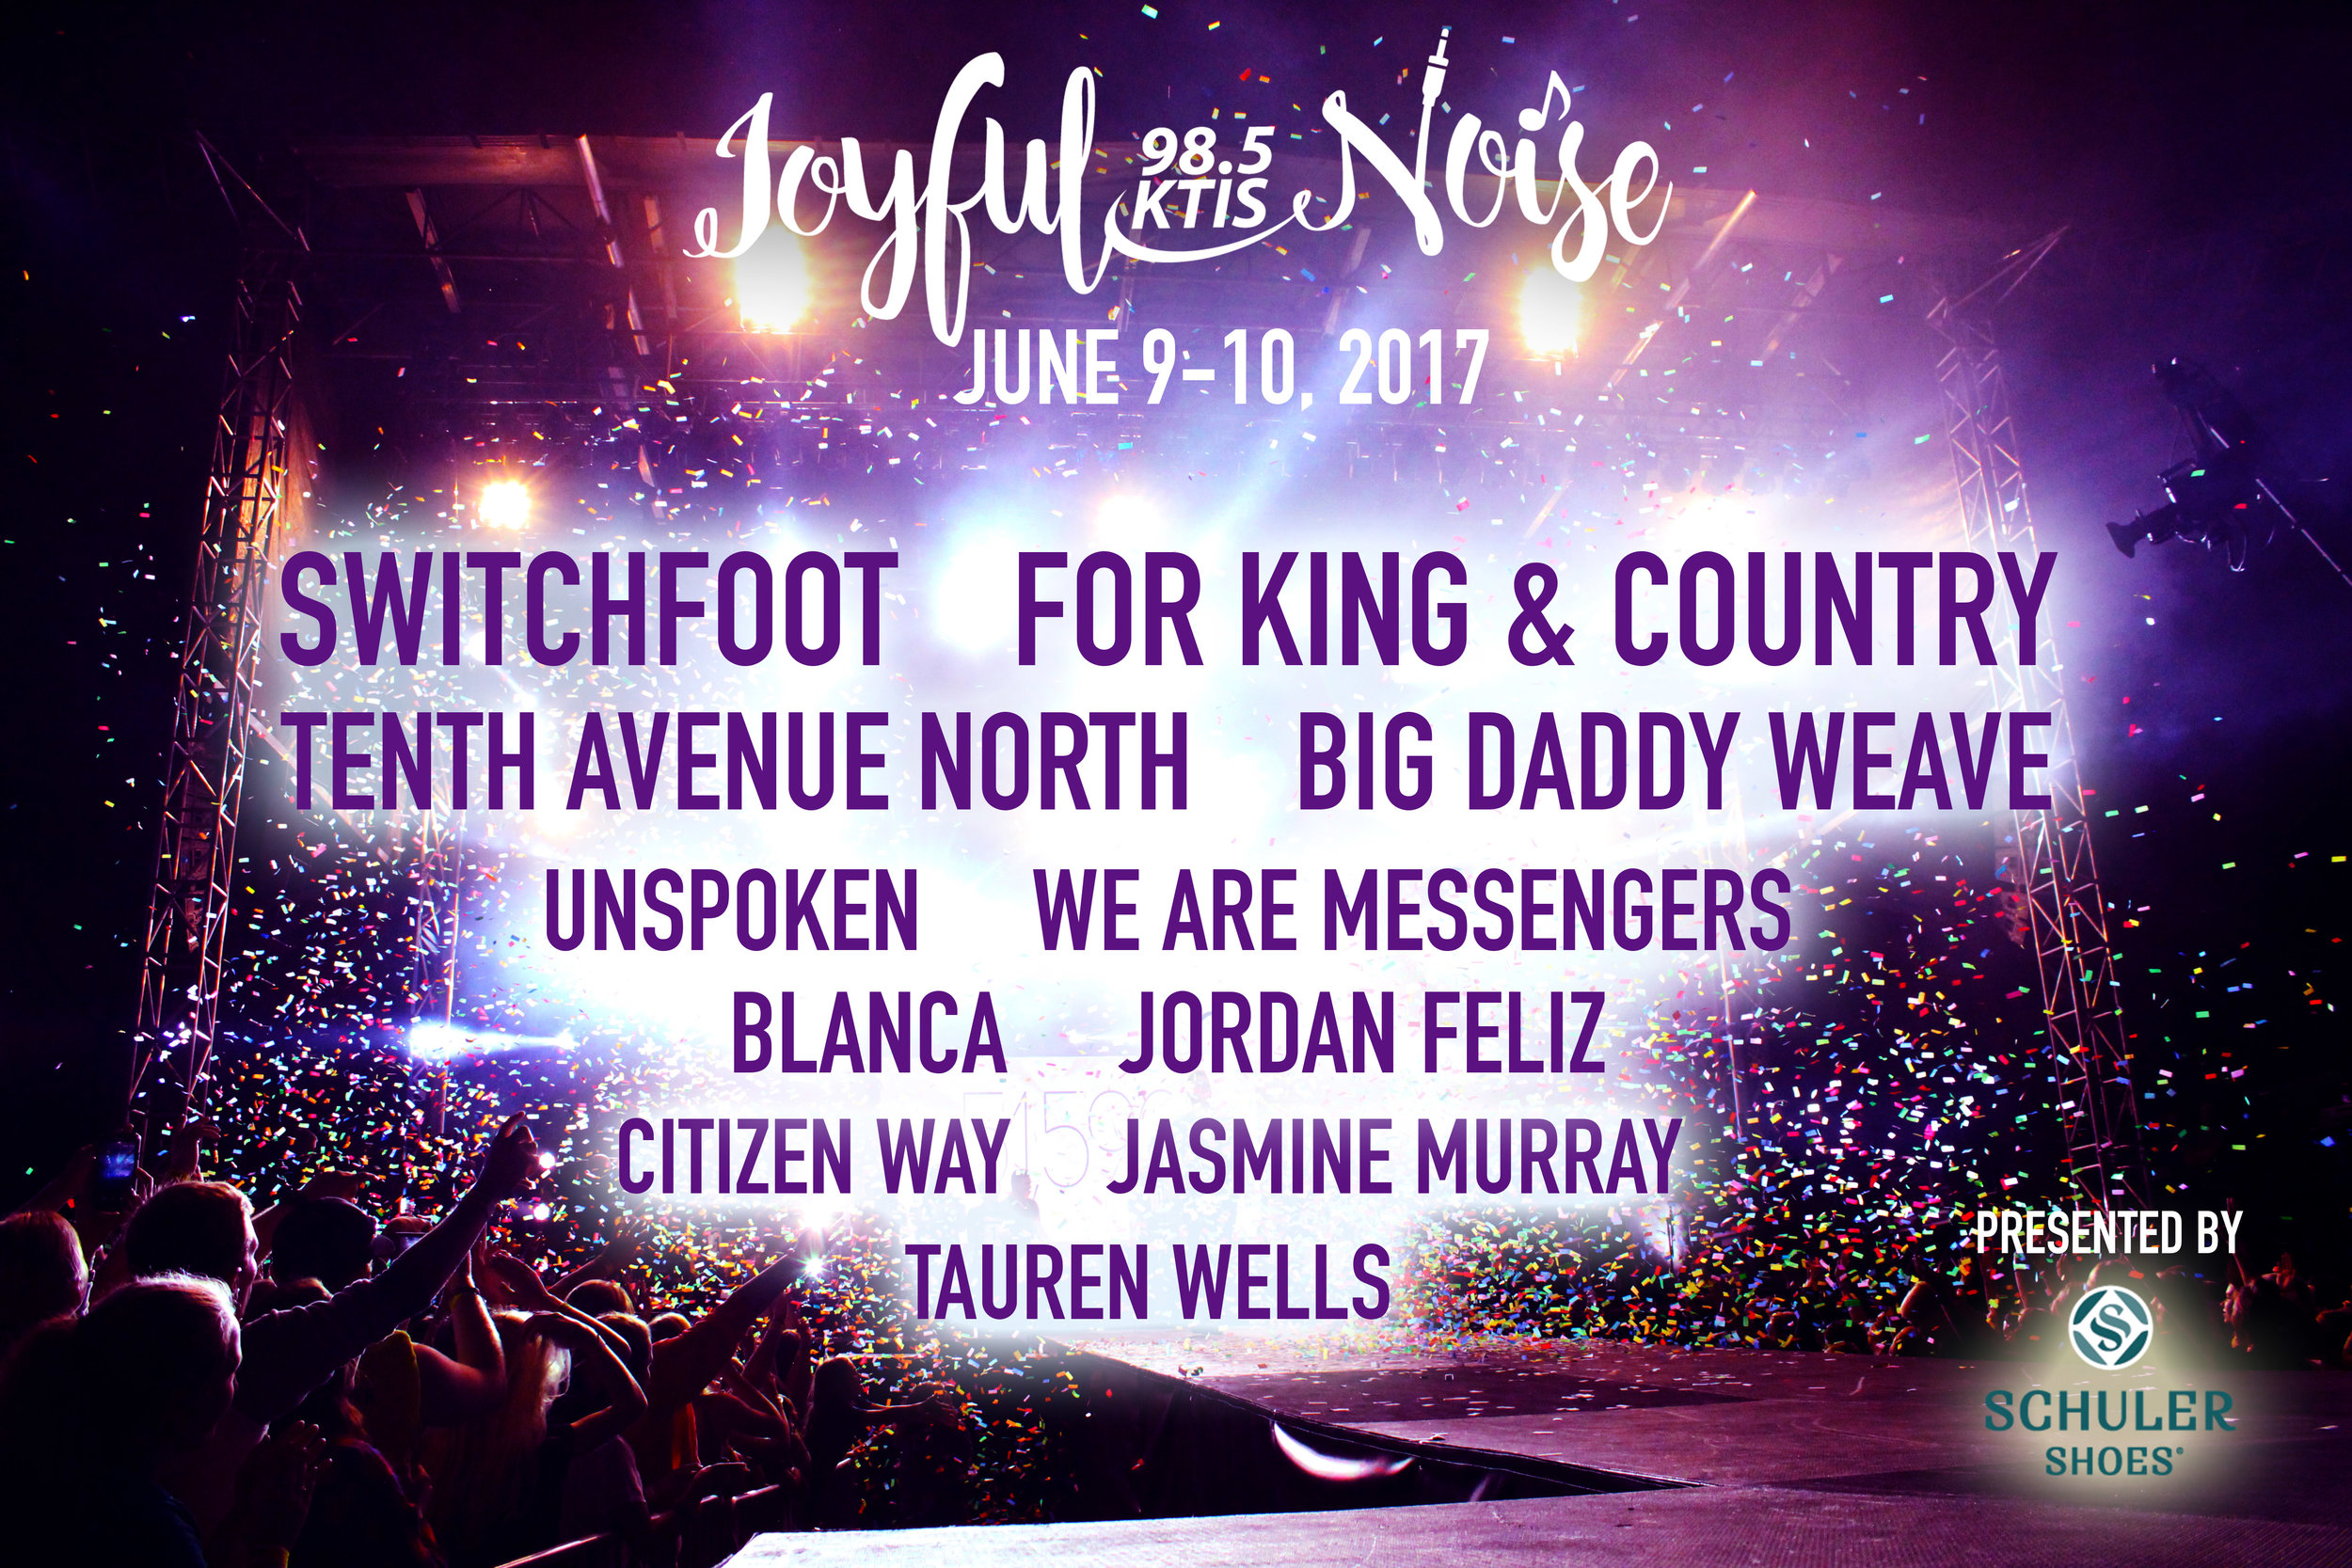 Final-Joyful-Noise-Artist-graphic.jpg